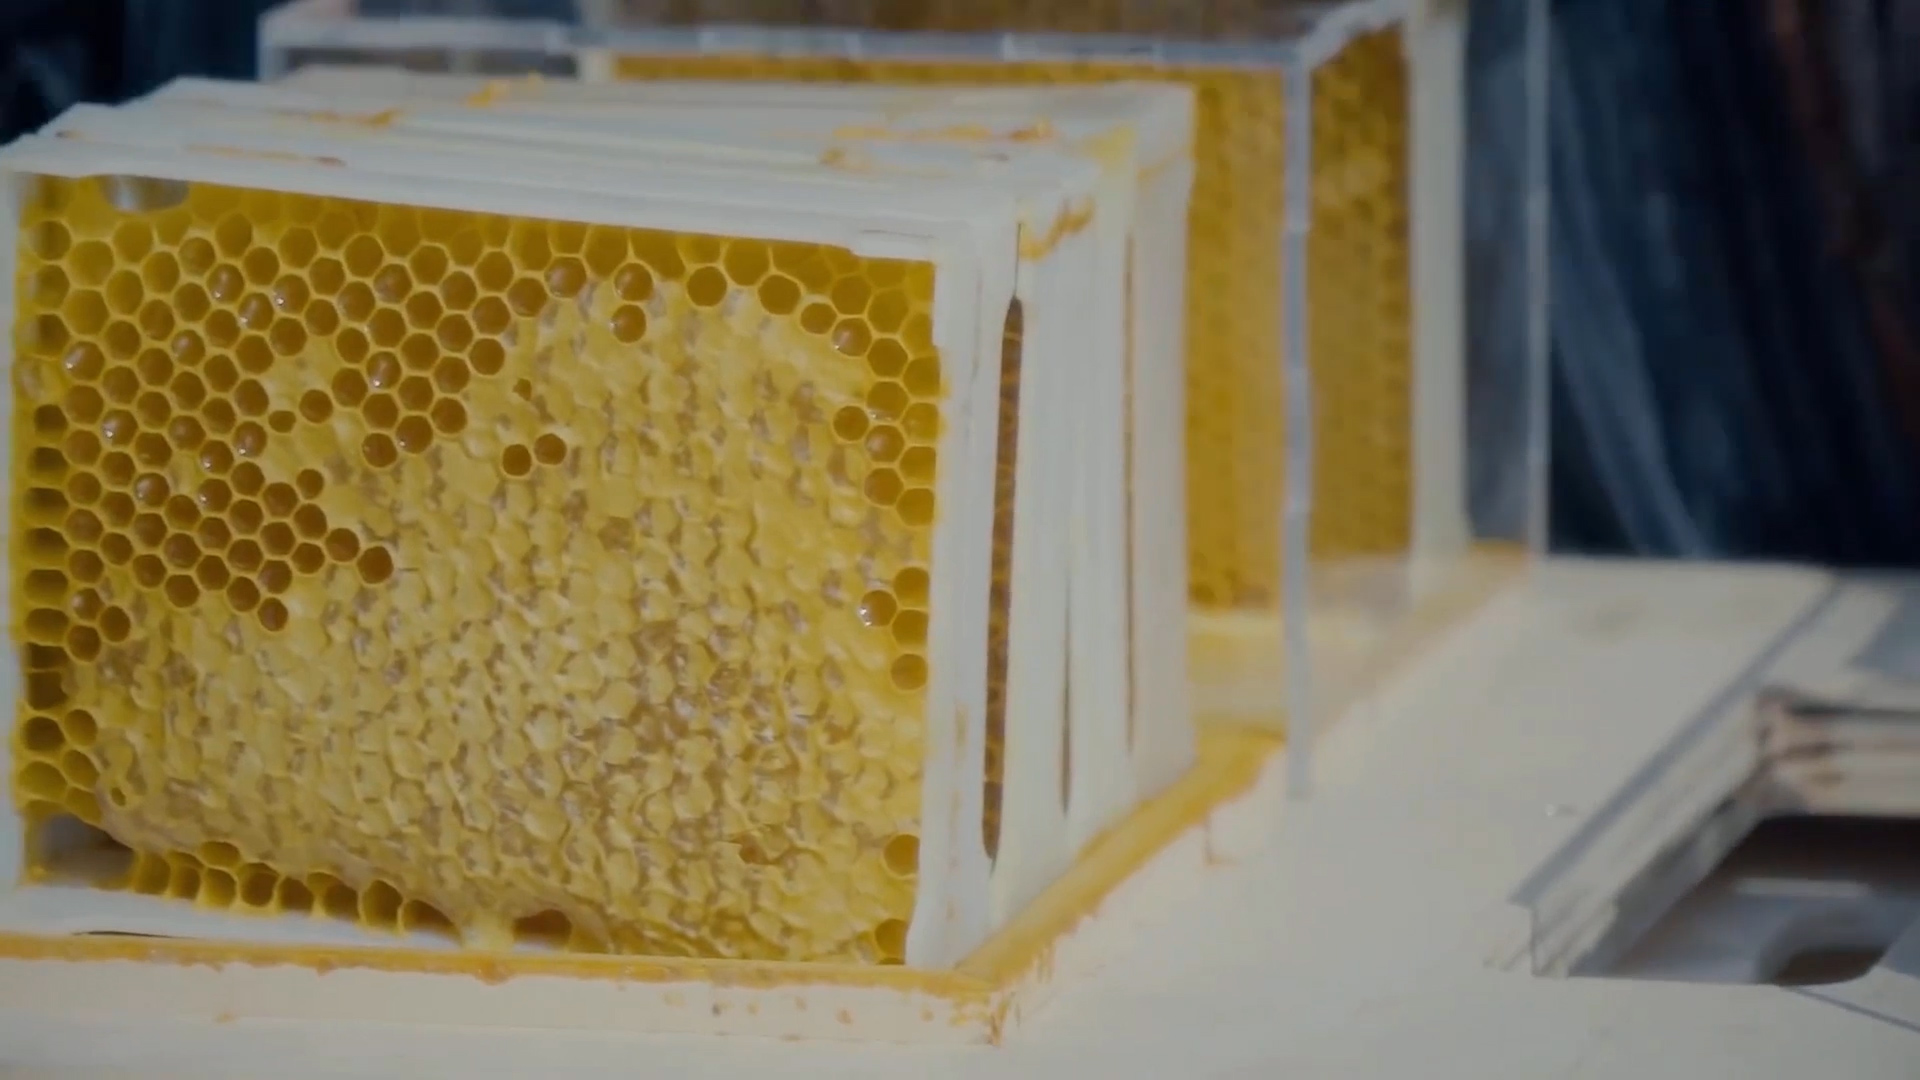 Startup Creates Modern Compact Beehive To Make Beekeeping More Accessible